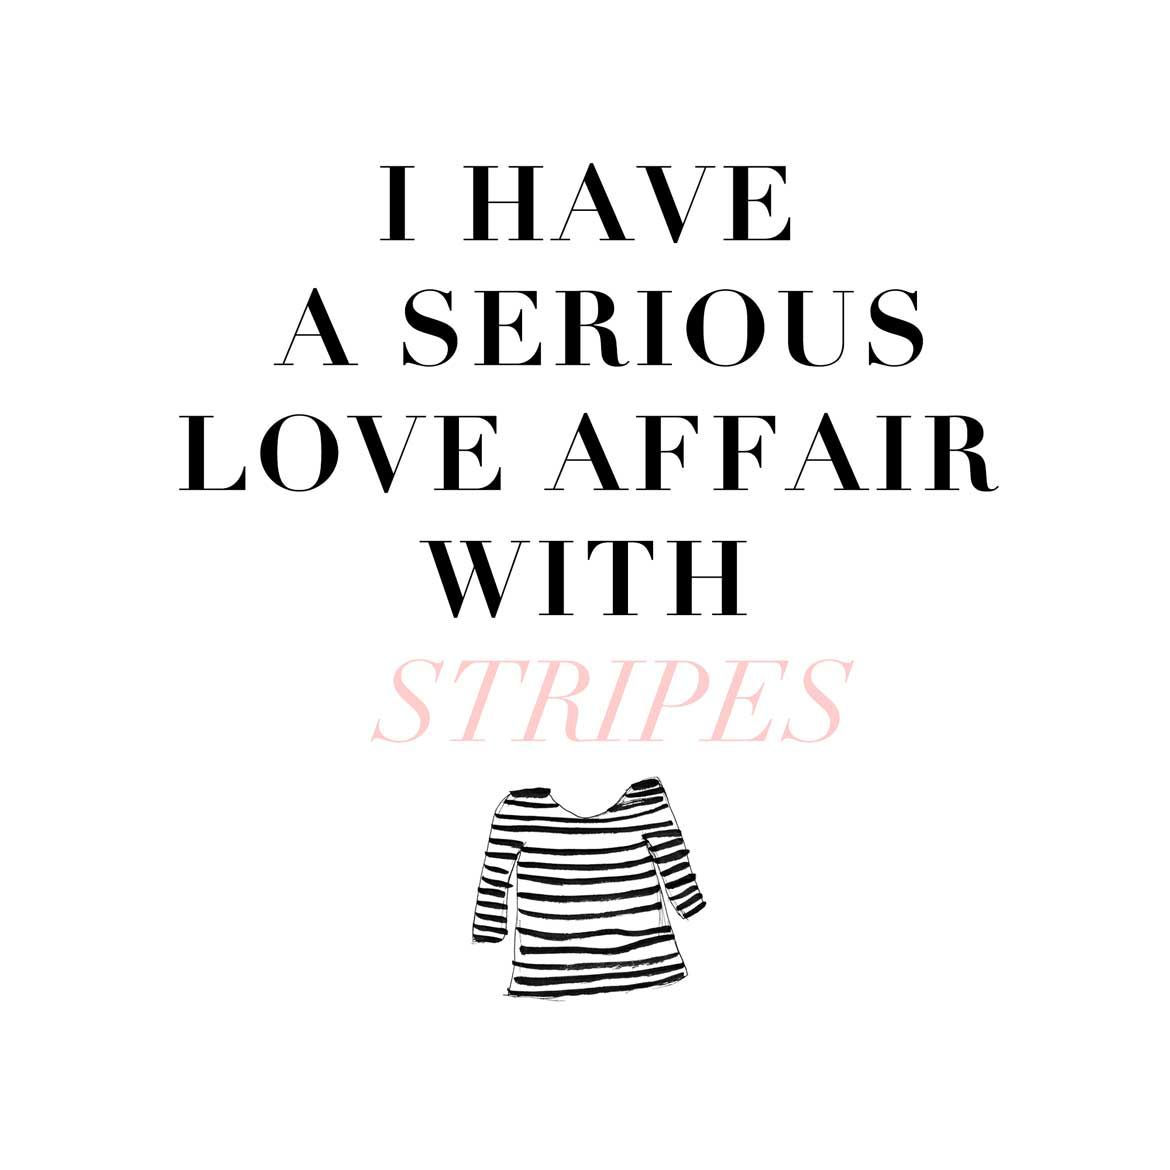 Spotted trend Stripes everywhere! Trend report on the new